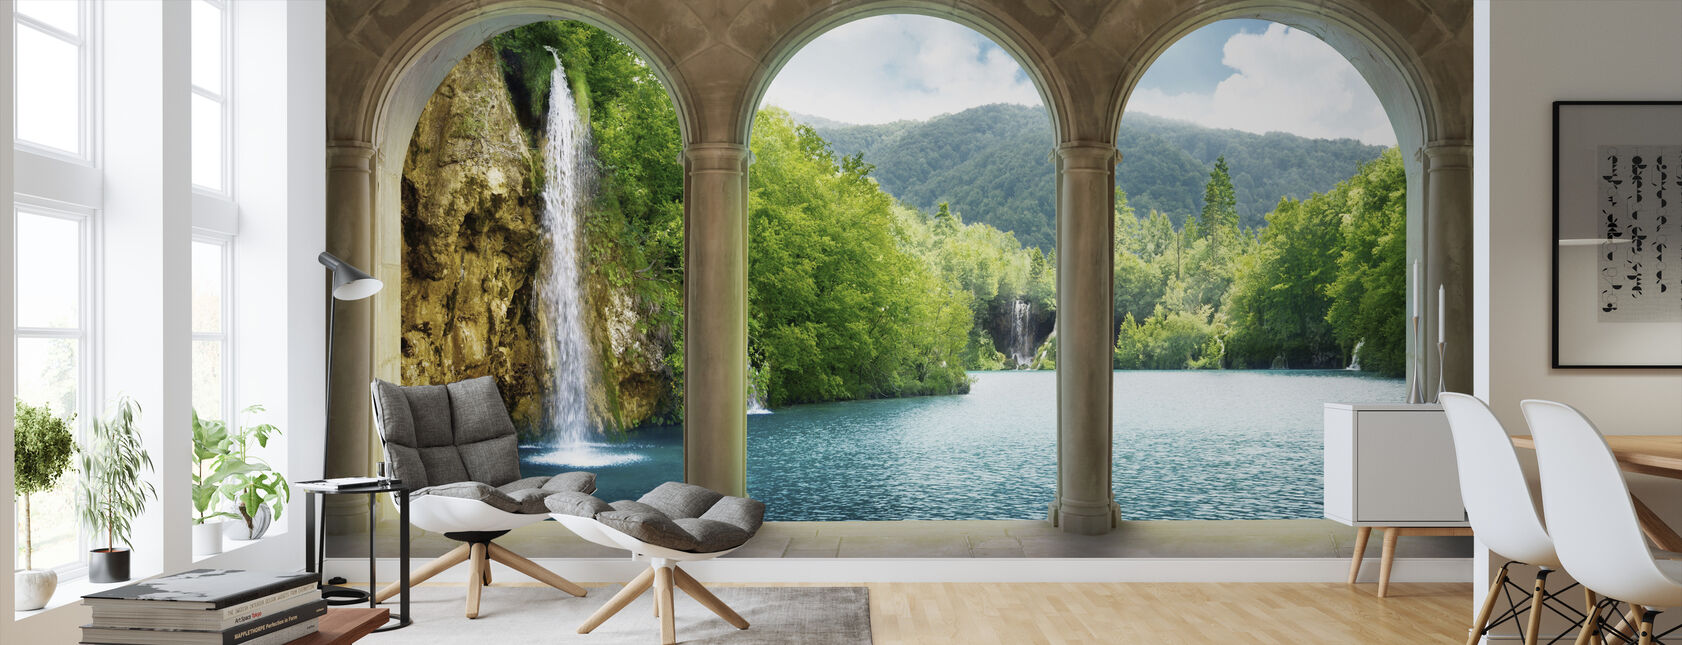 Waterfall behind Vault - Wallpaper - Living Room